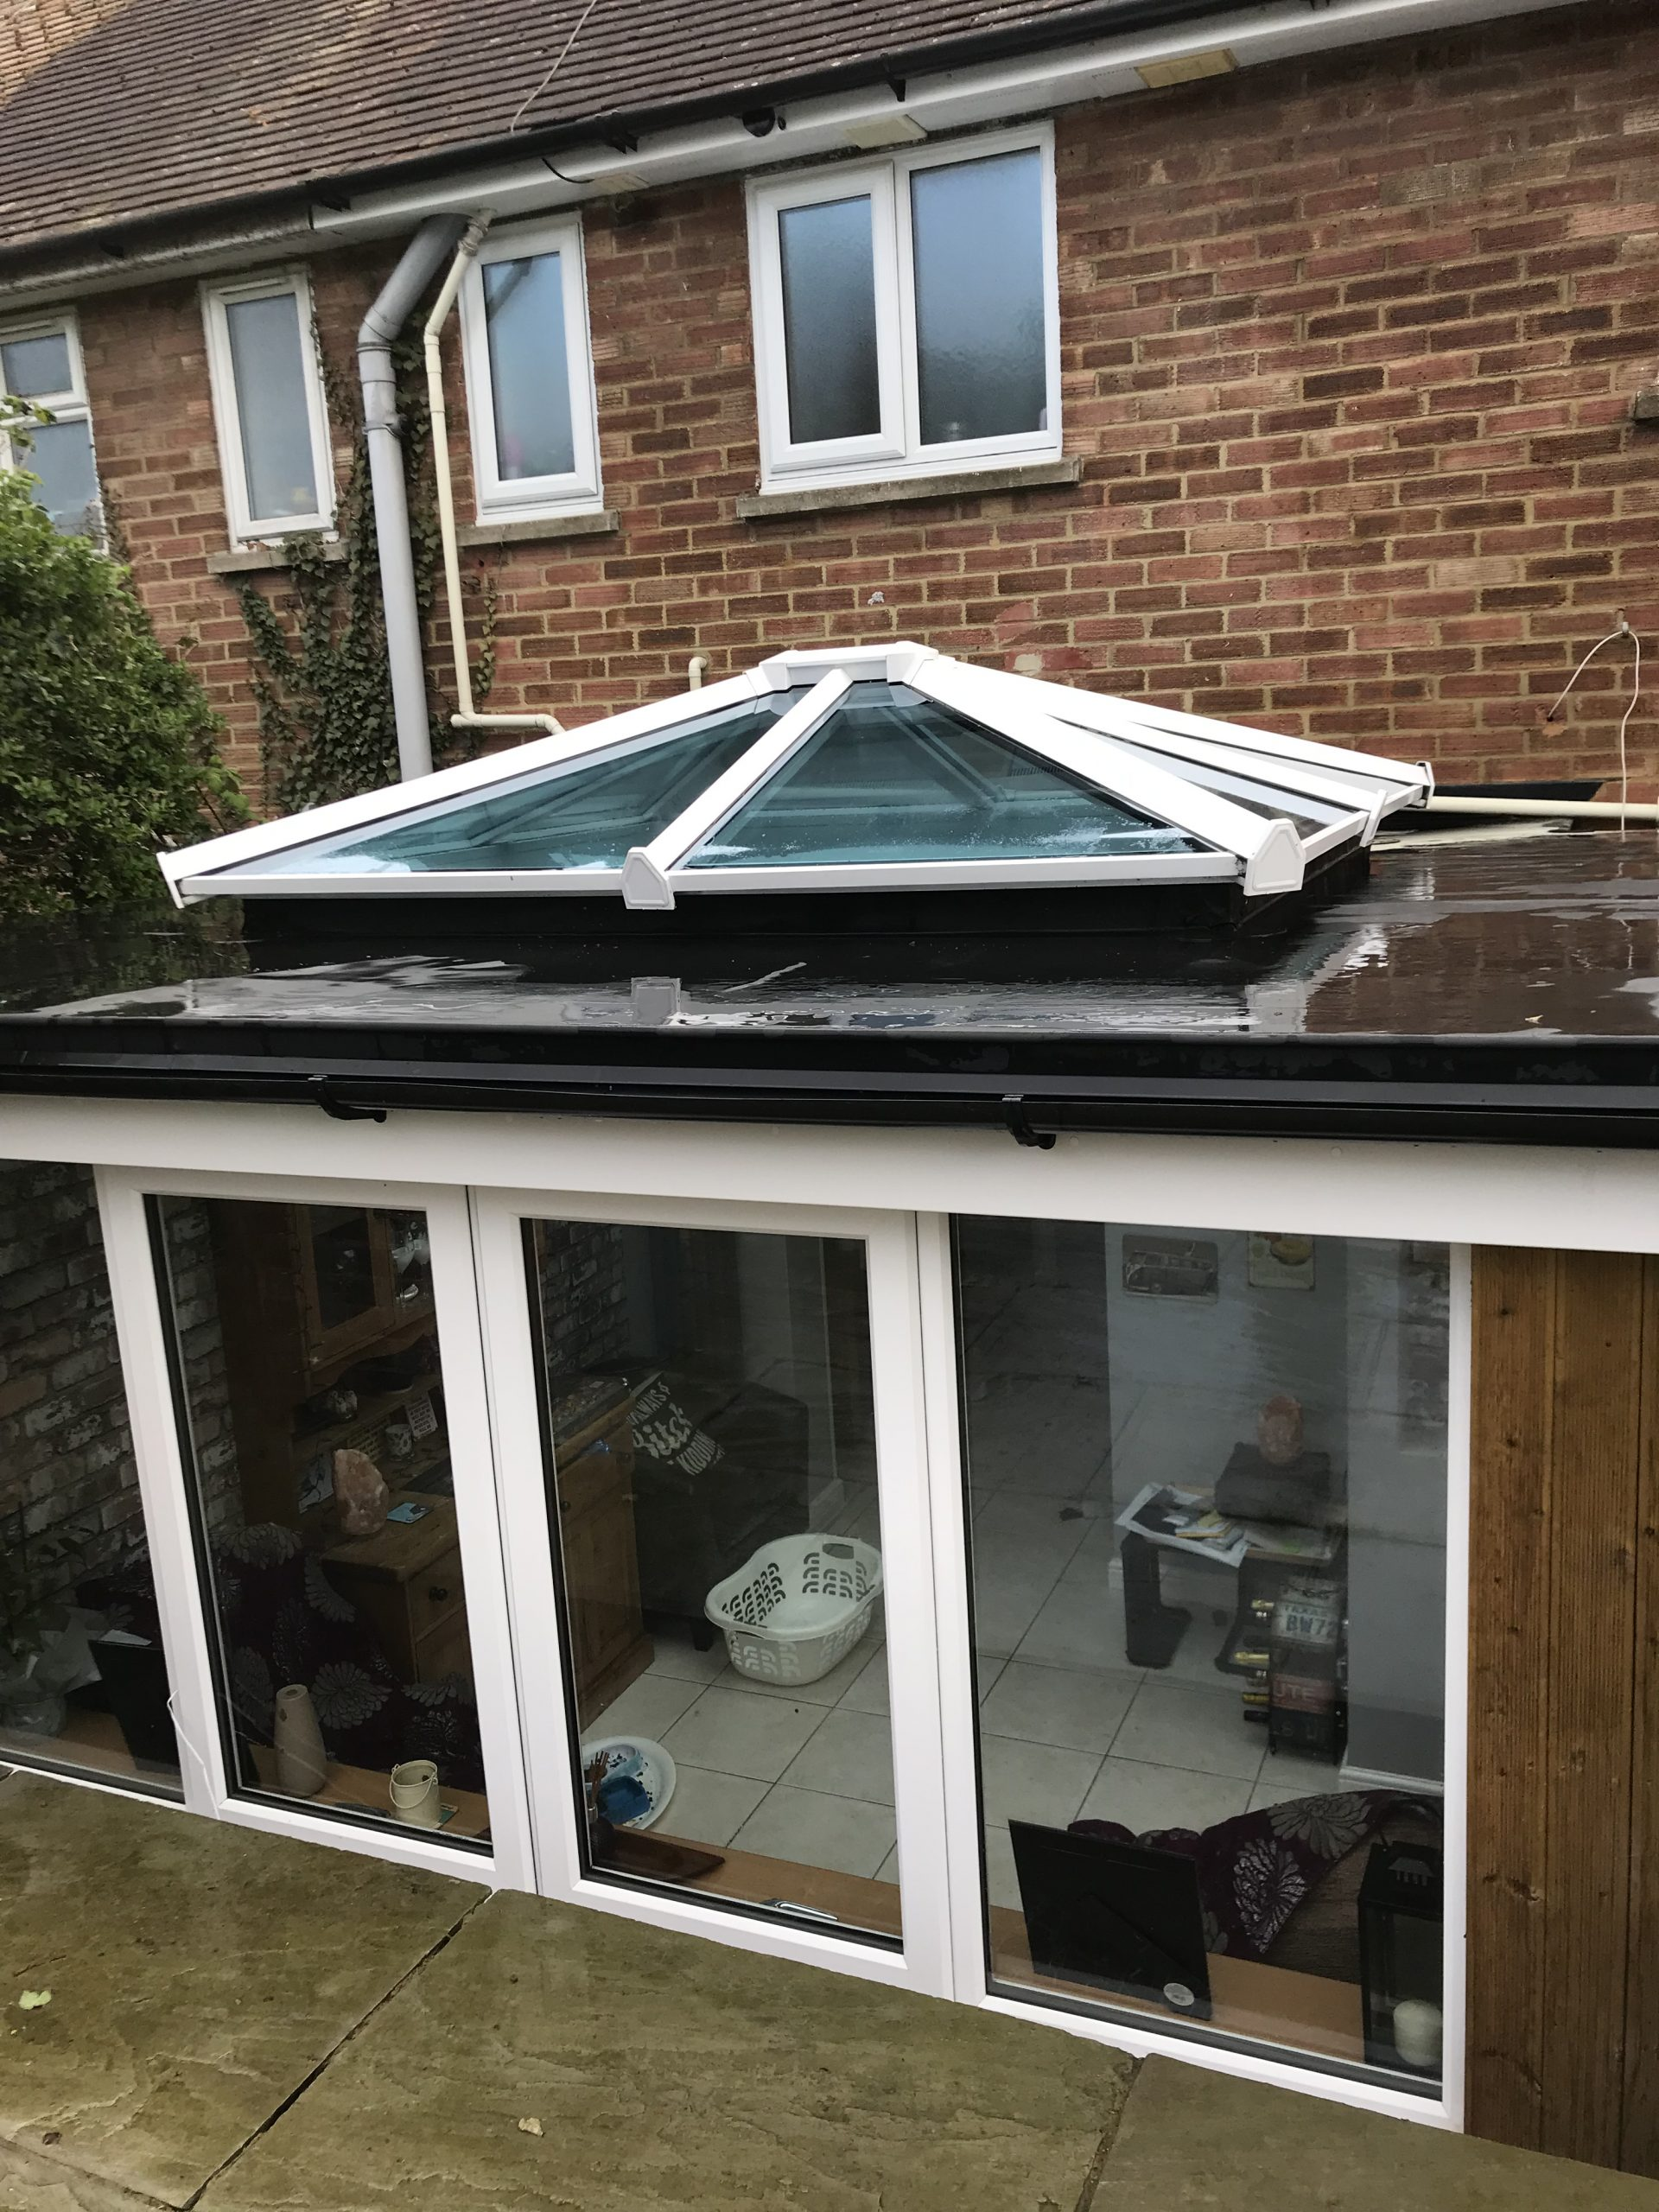 Brighton Skypod on flat roof extension